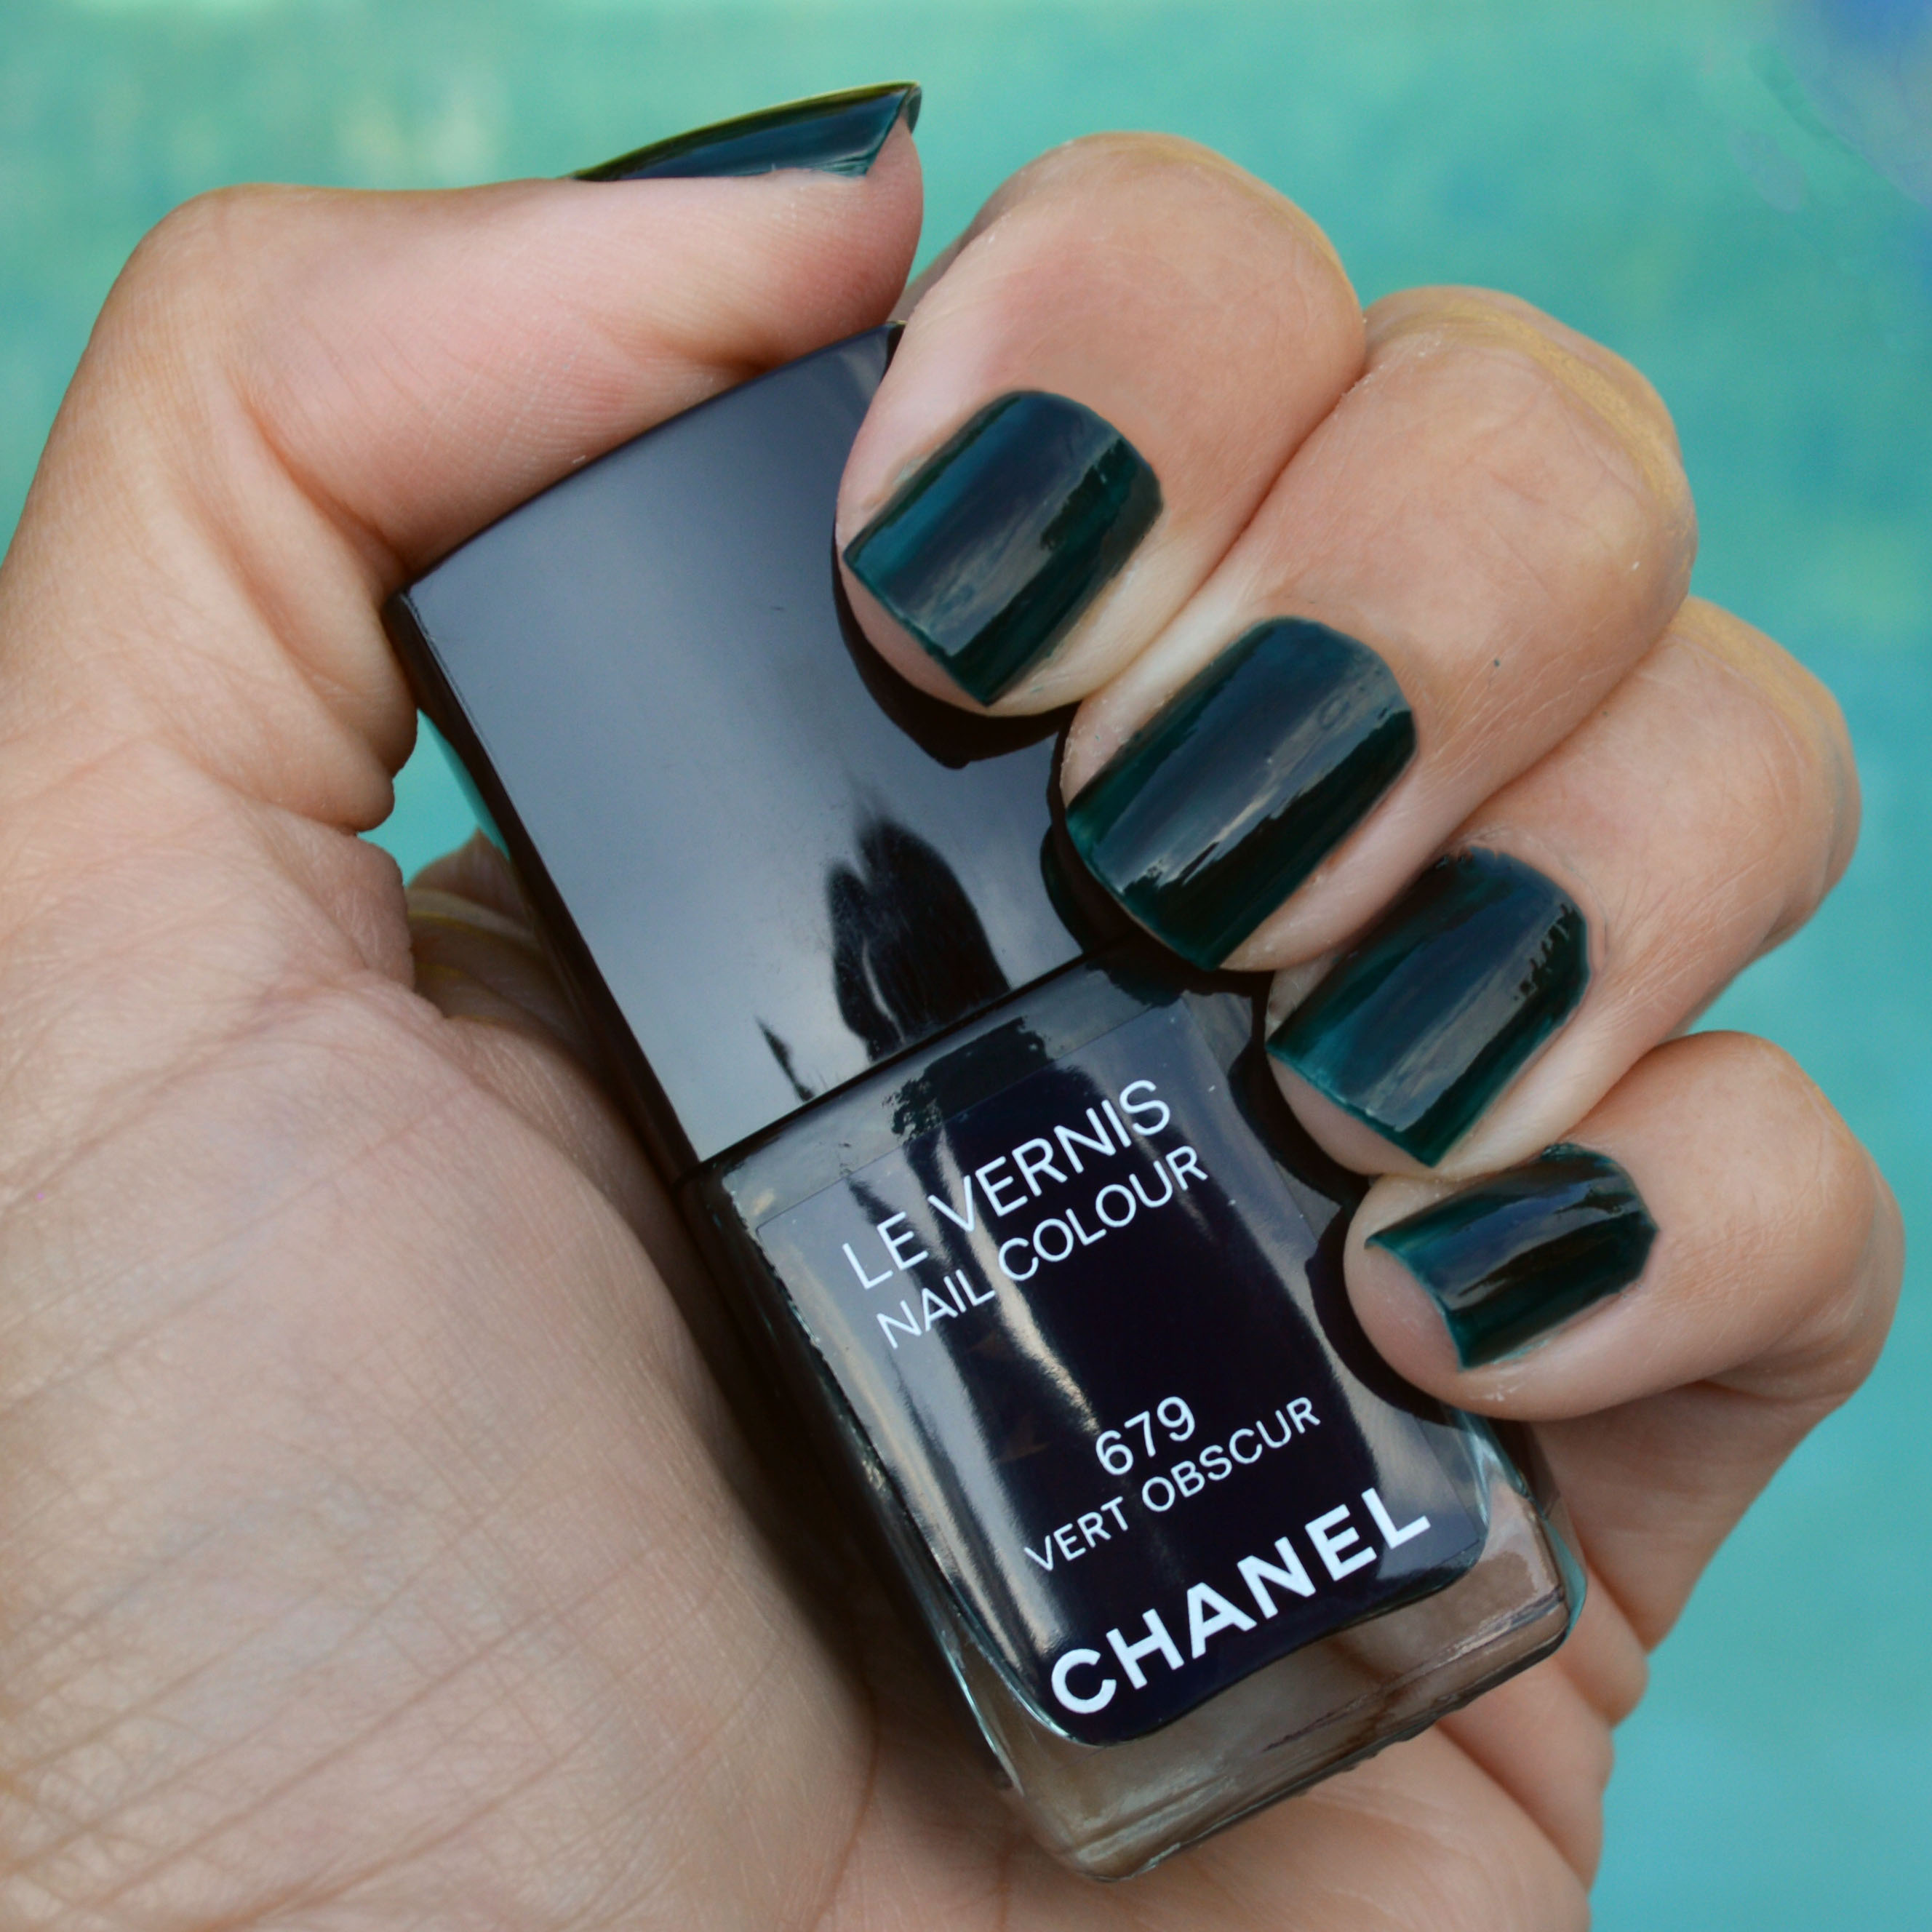 Chanel Vert Obscur fall 2015 nail polish review | Bay Area Fashionista